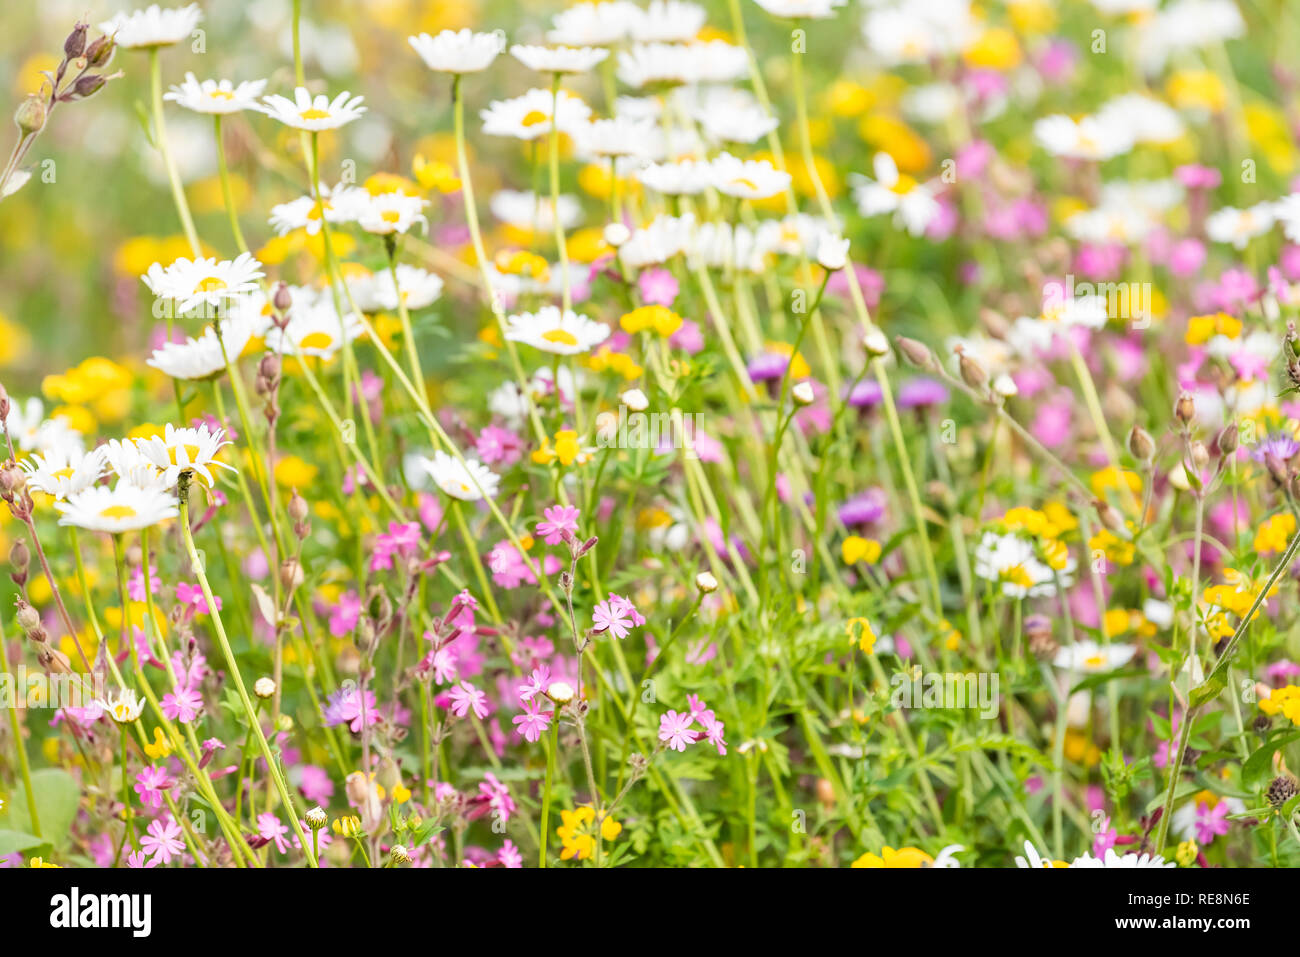 London, UK St James Park green grass weeds with white daisy and purple flowers in summer closeup pattern of bloom - Stock Image